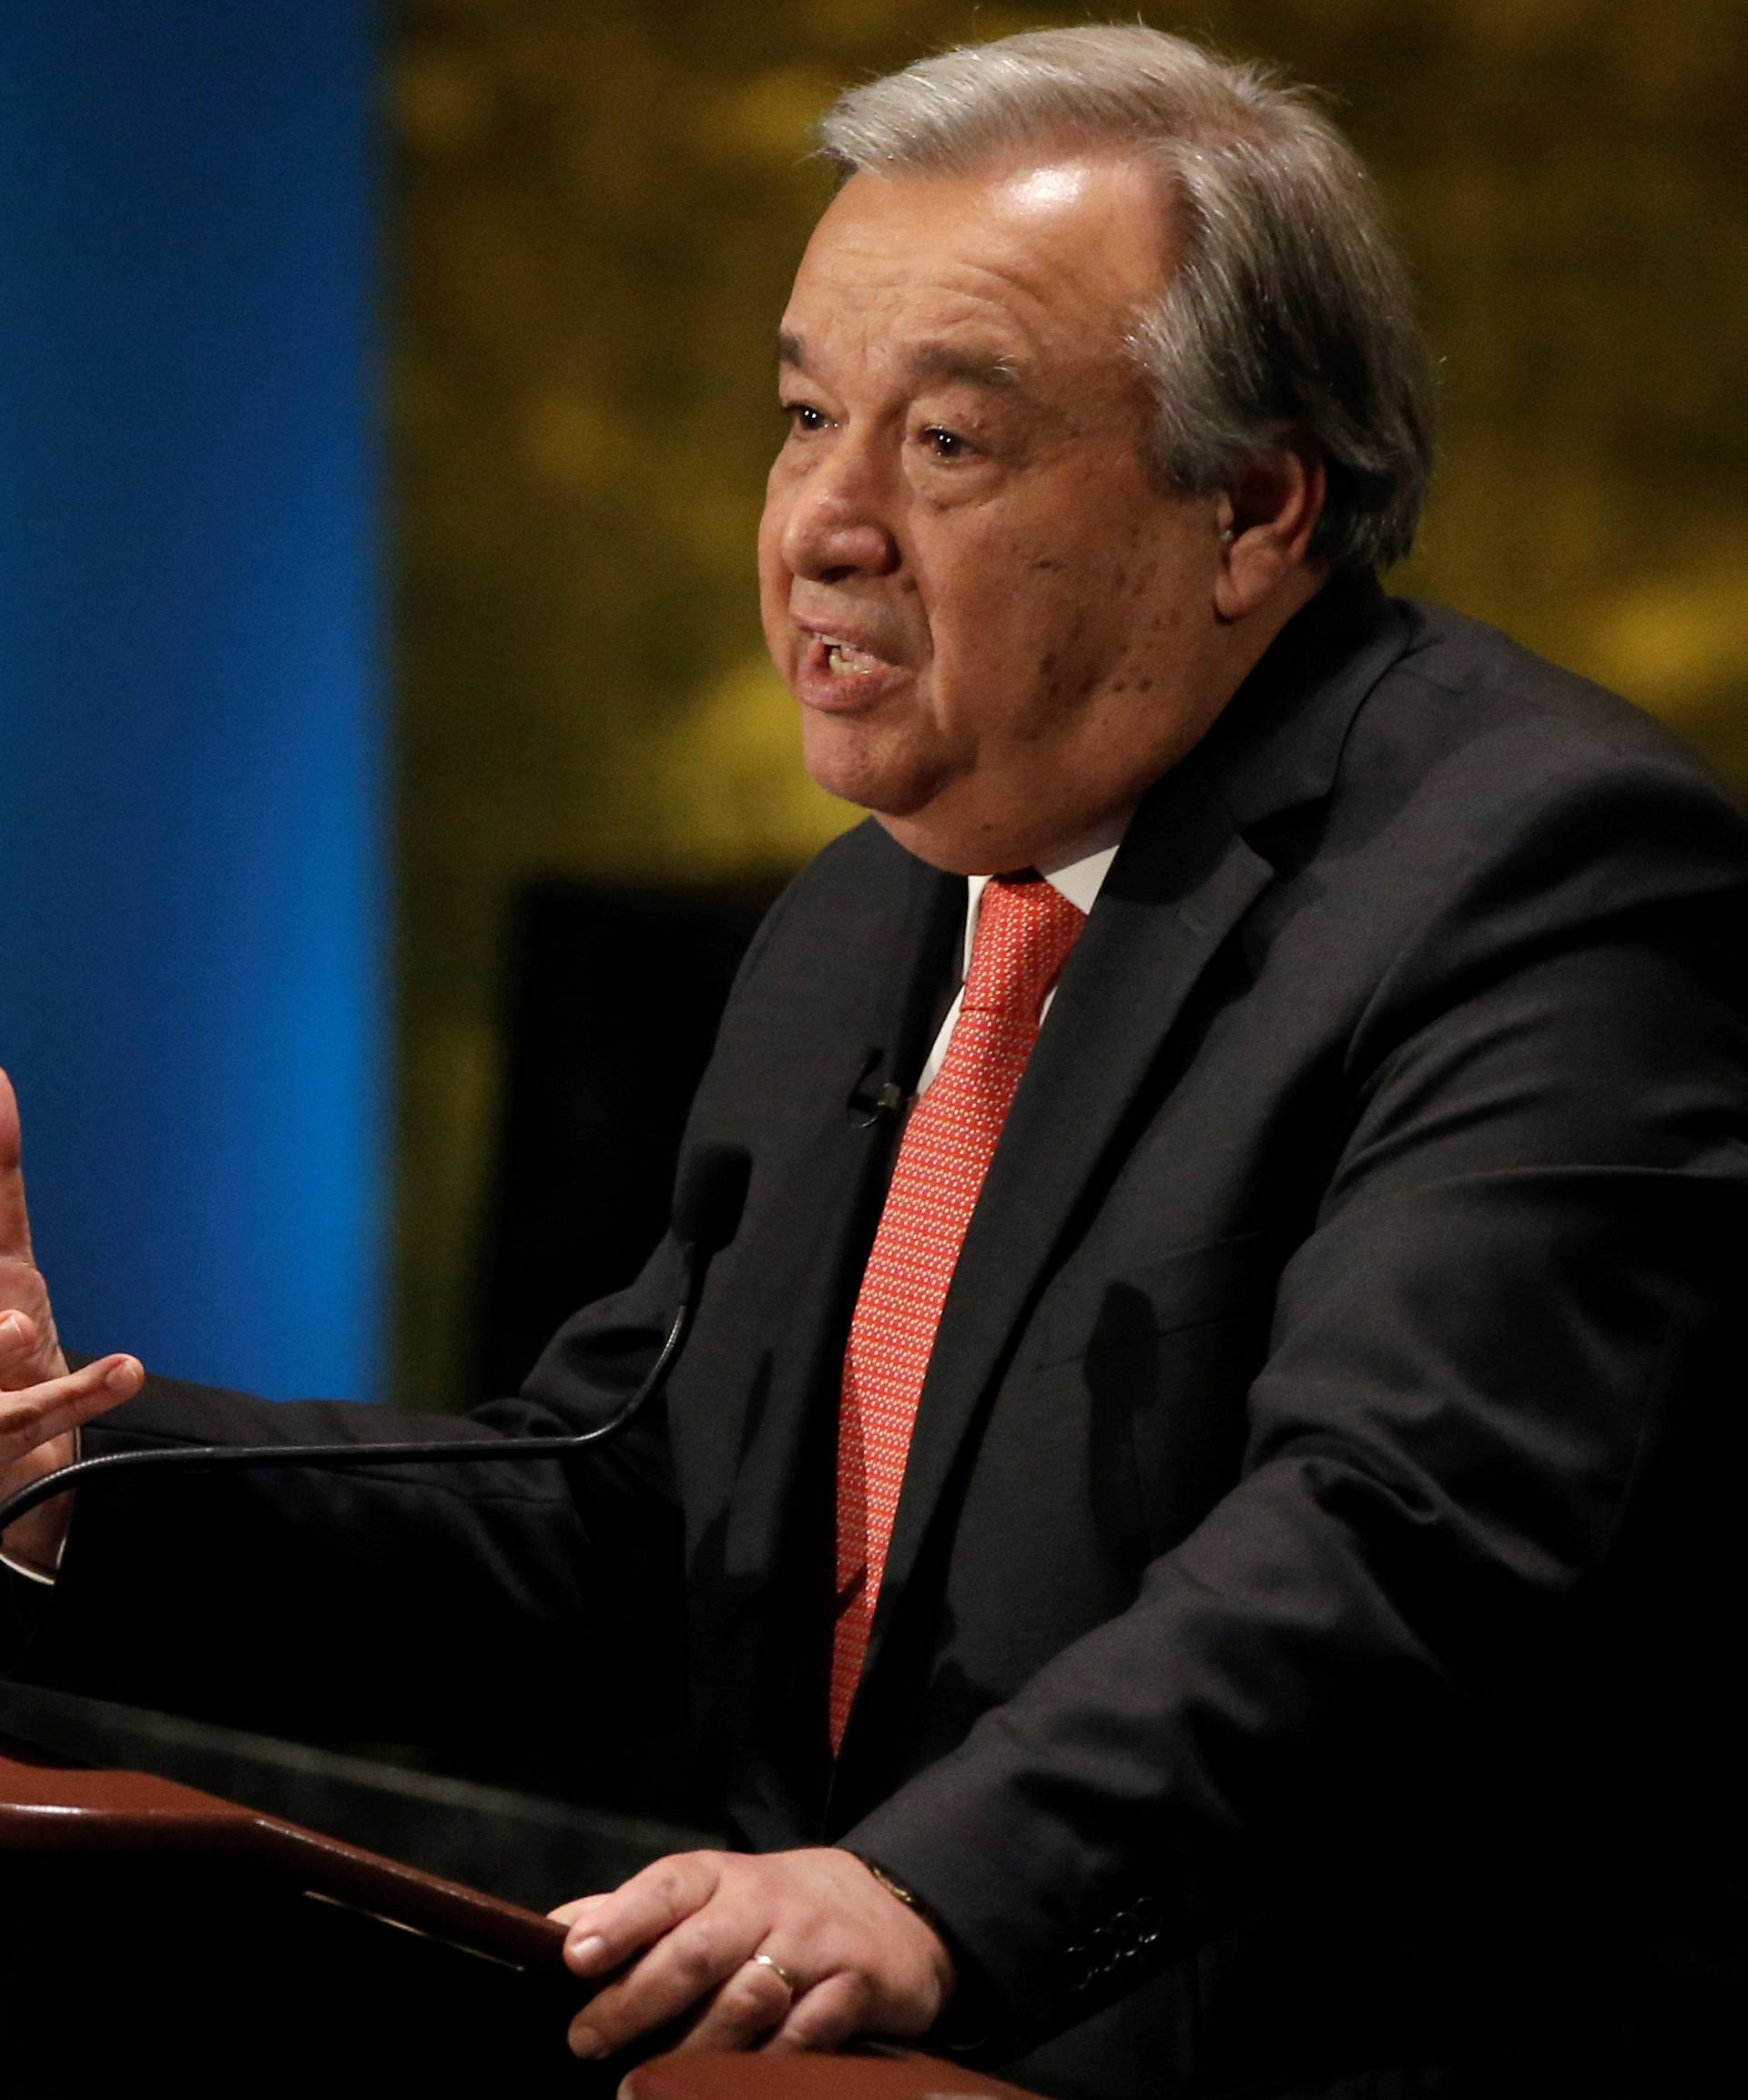 Former U.N. High Commissioner for Refugees Antonio Guterres speaks during a debate in the United Nations General Assembly between candidates vying to be the next U.N. Secretary General at U.N. headquarters in New York